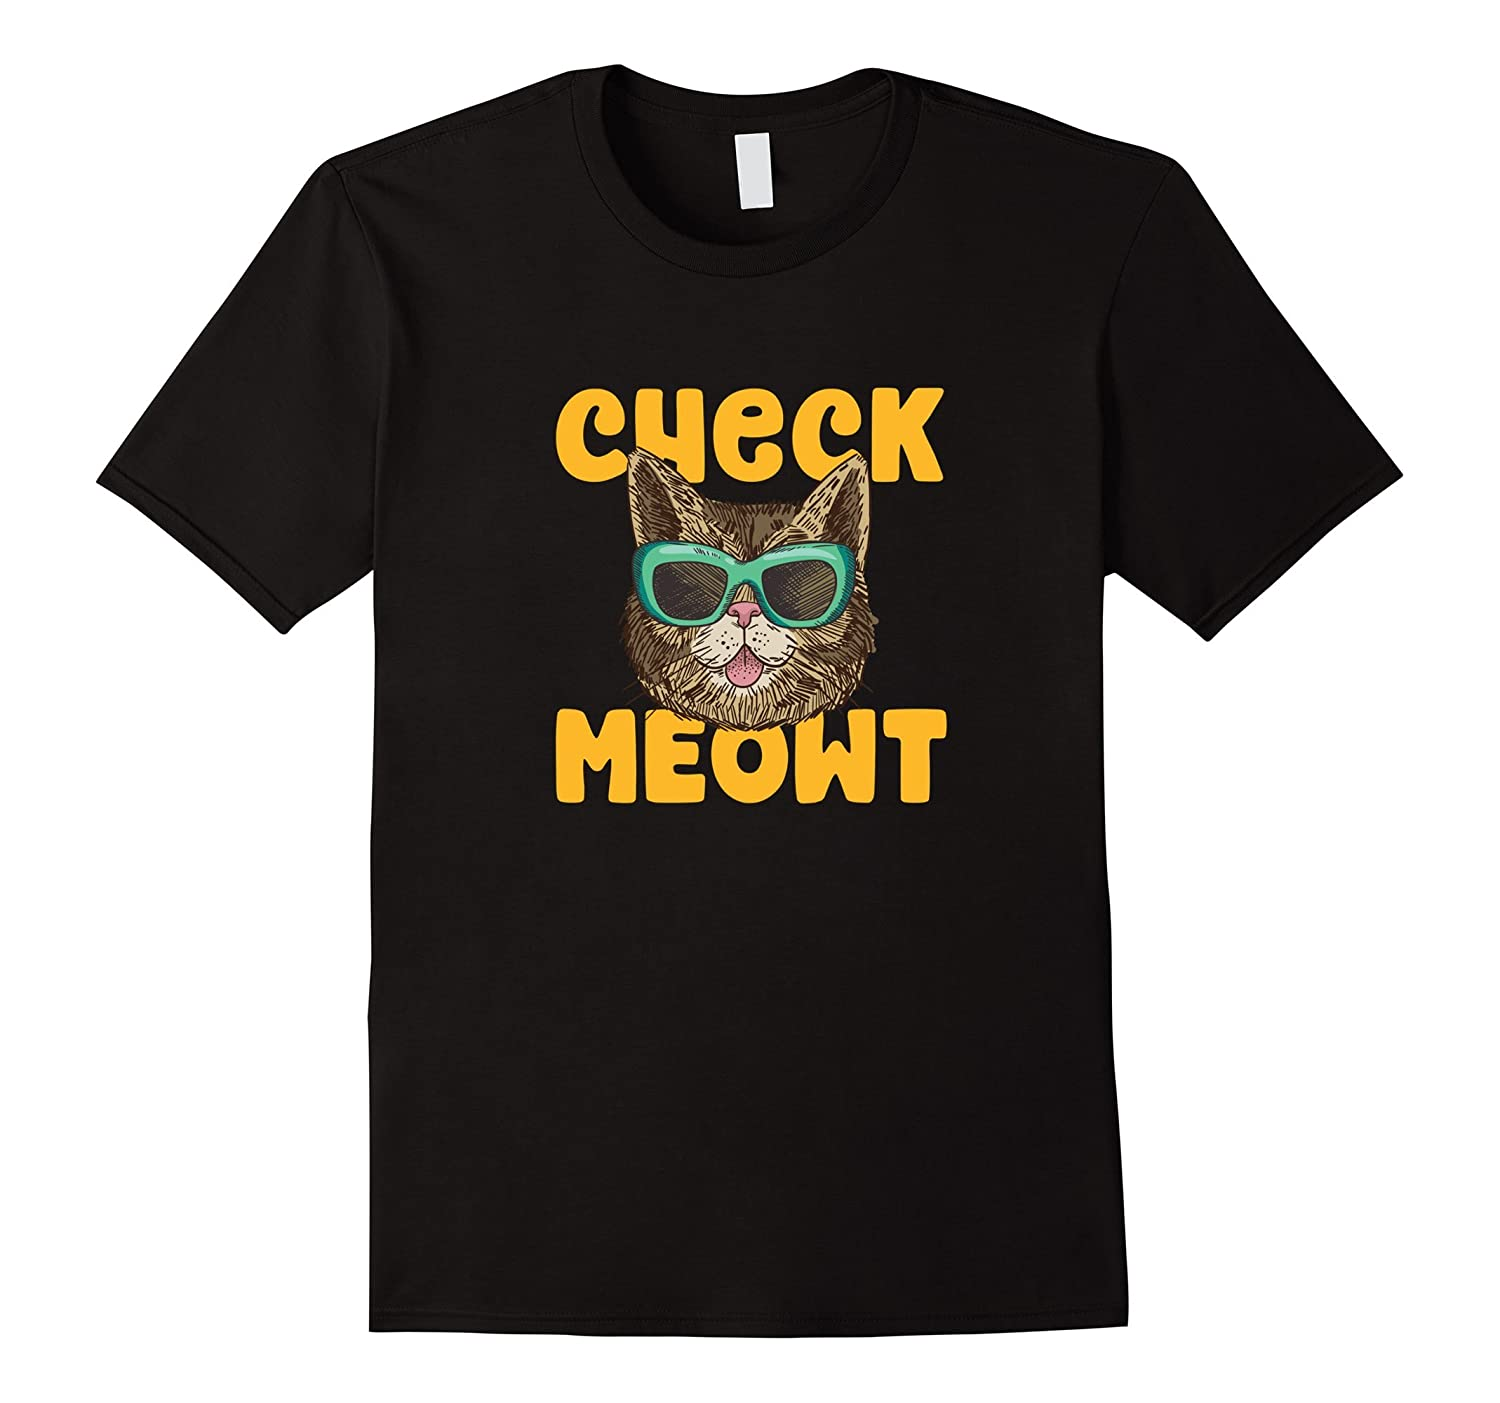 Check Meowt (Me Out) Funny Cat Pun Tee-Art